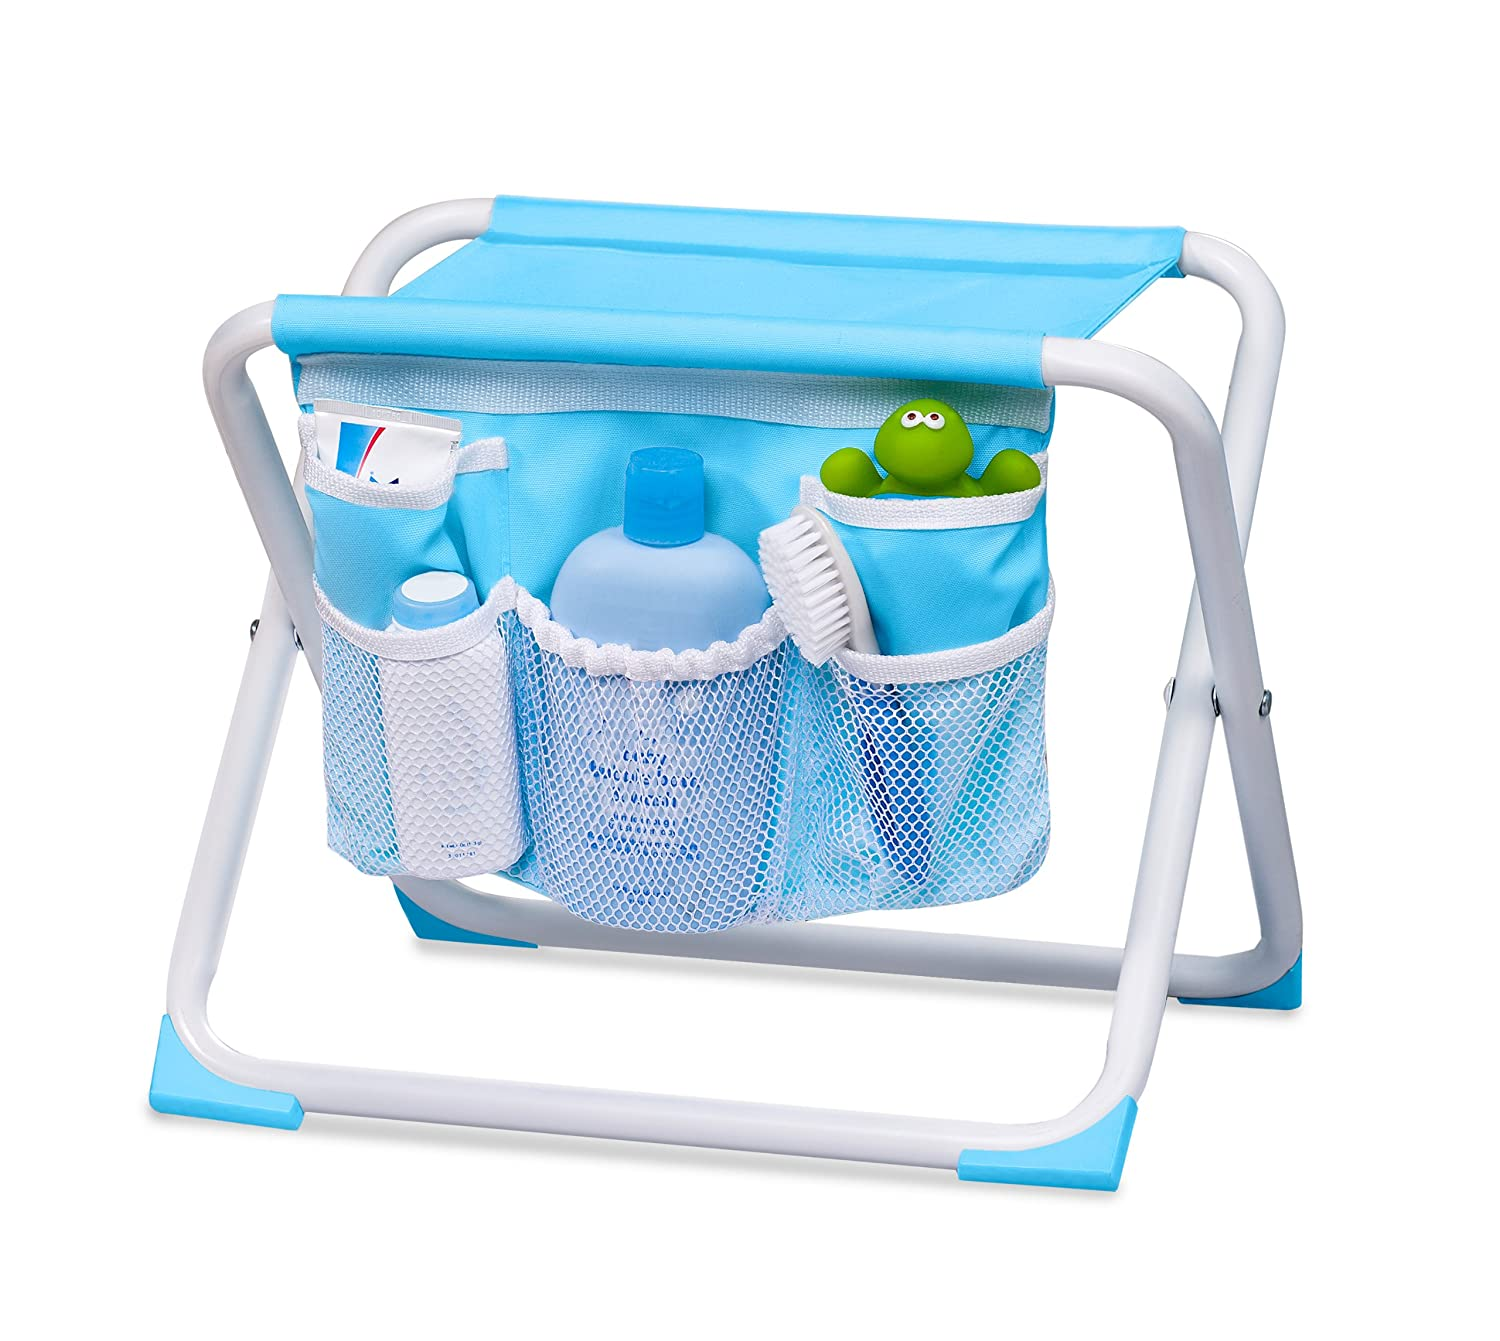 Amazon.com : Summer Infant Tubside Seat : Baby Bathing Products : Baby